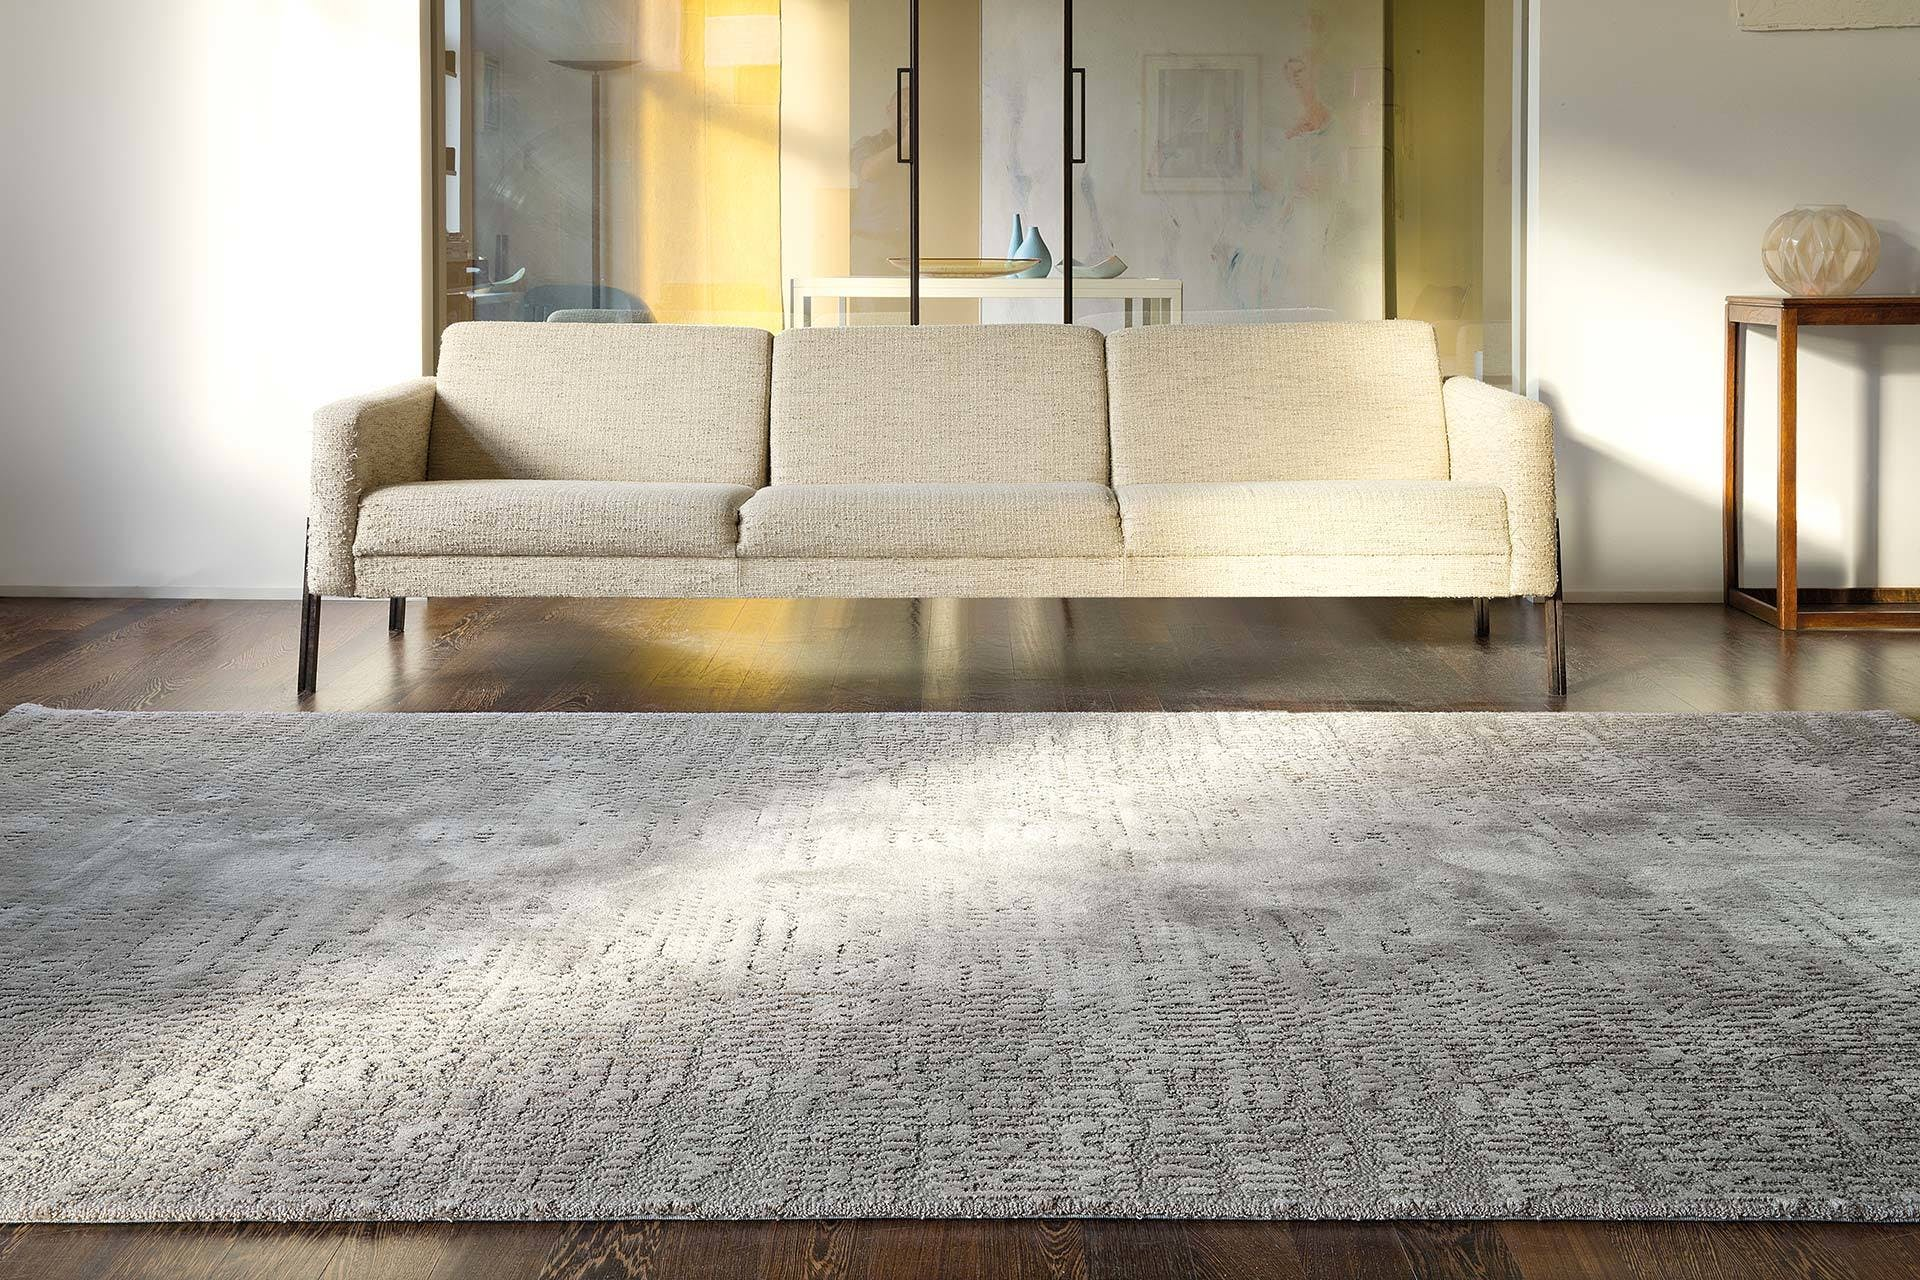 Maestro Matrix Moonbeam Sfeerbeeld Limited Edition Carpets